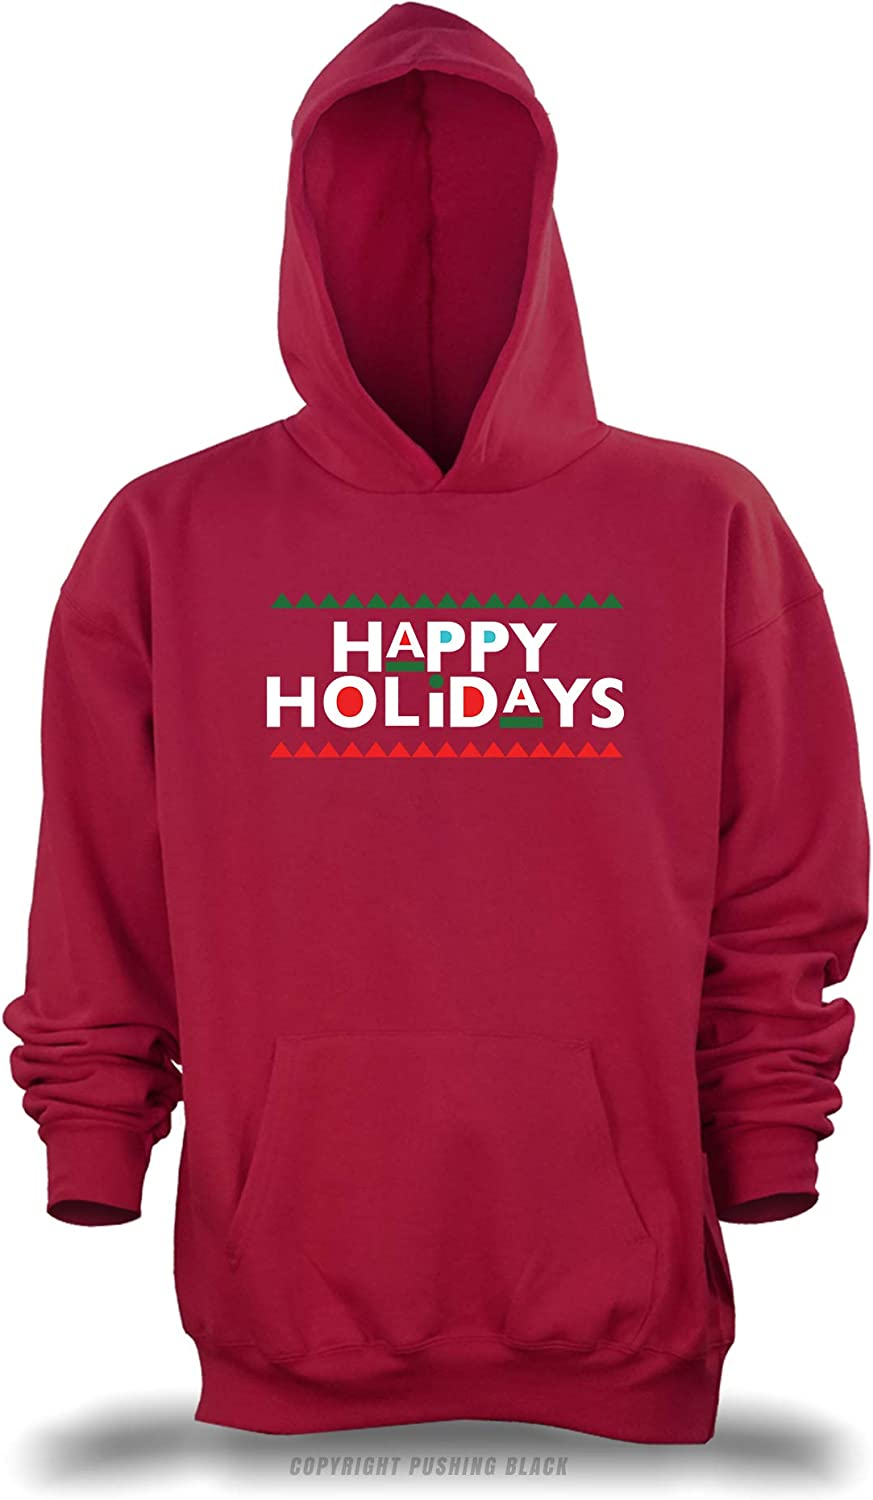 Happy Holidays Martin Style Unisex Pullover Hoodie